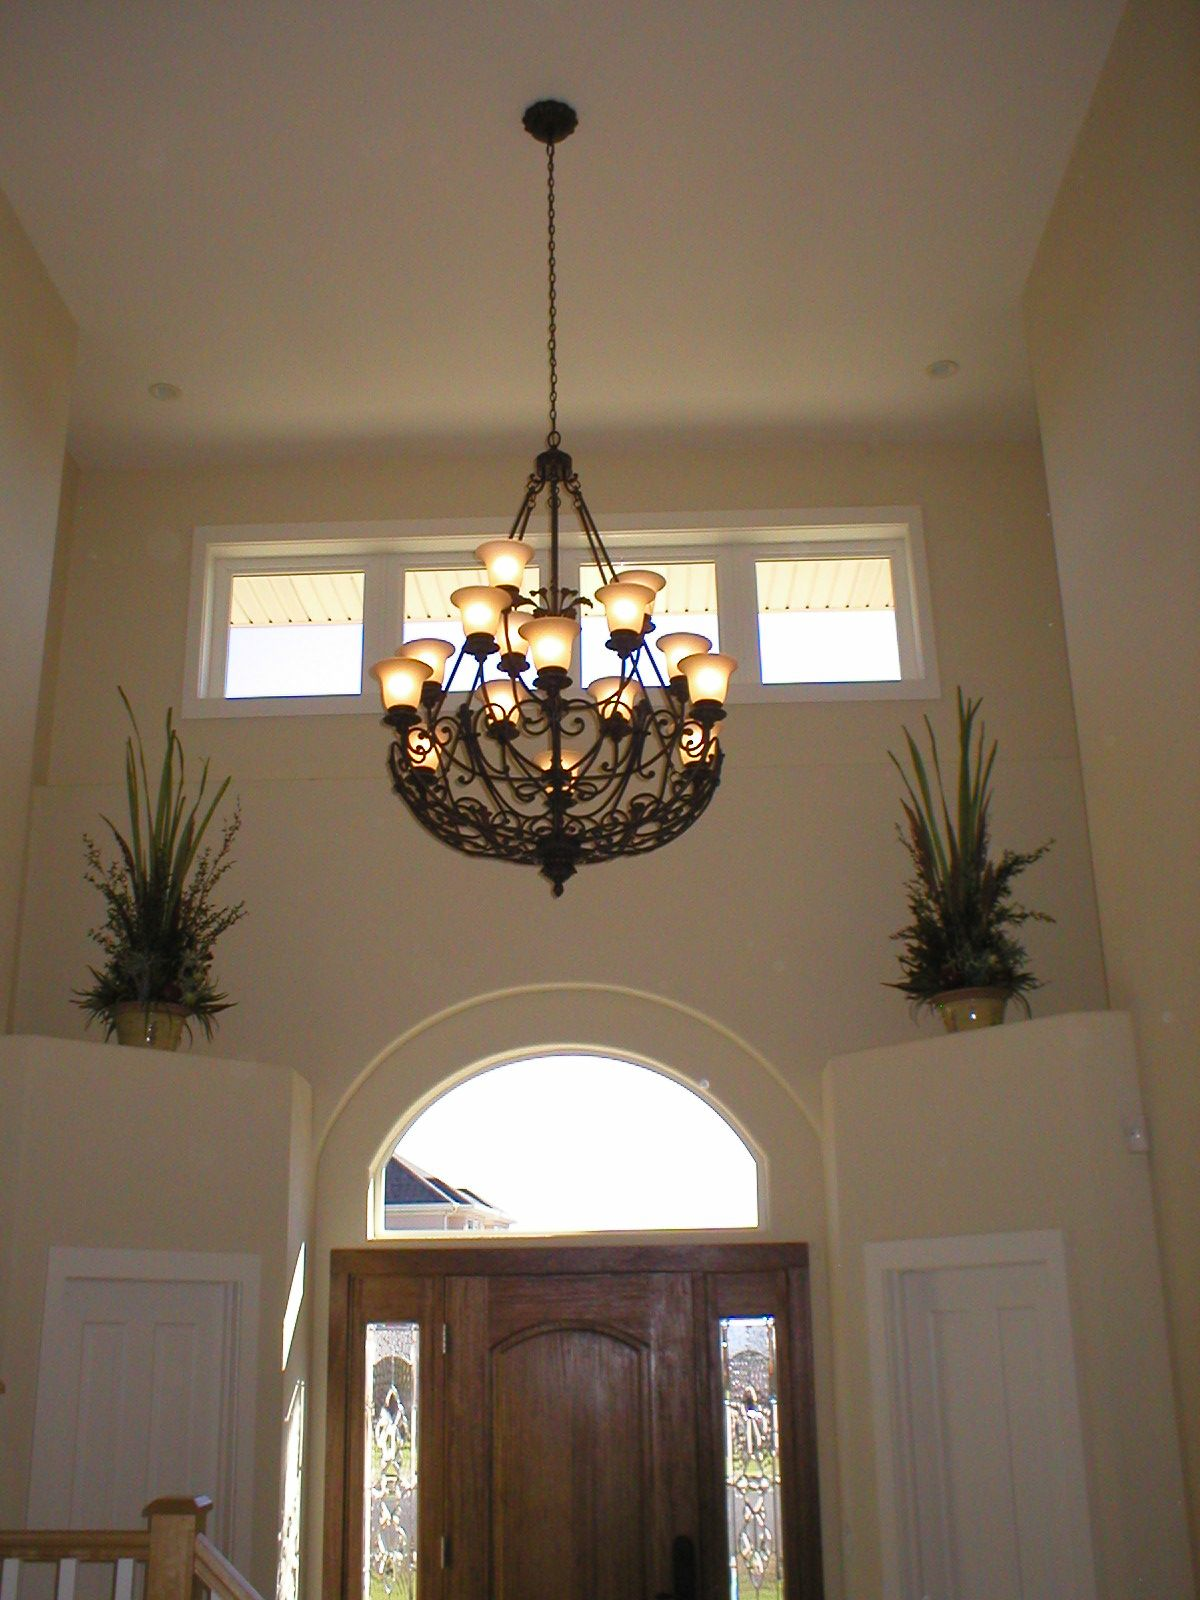 Find out how high to hang a foyer chandelier description from find out how high to hang a foyer chandelier description from ochandelier arubaitofo Image collections